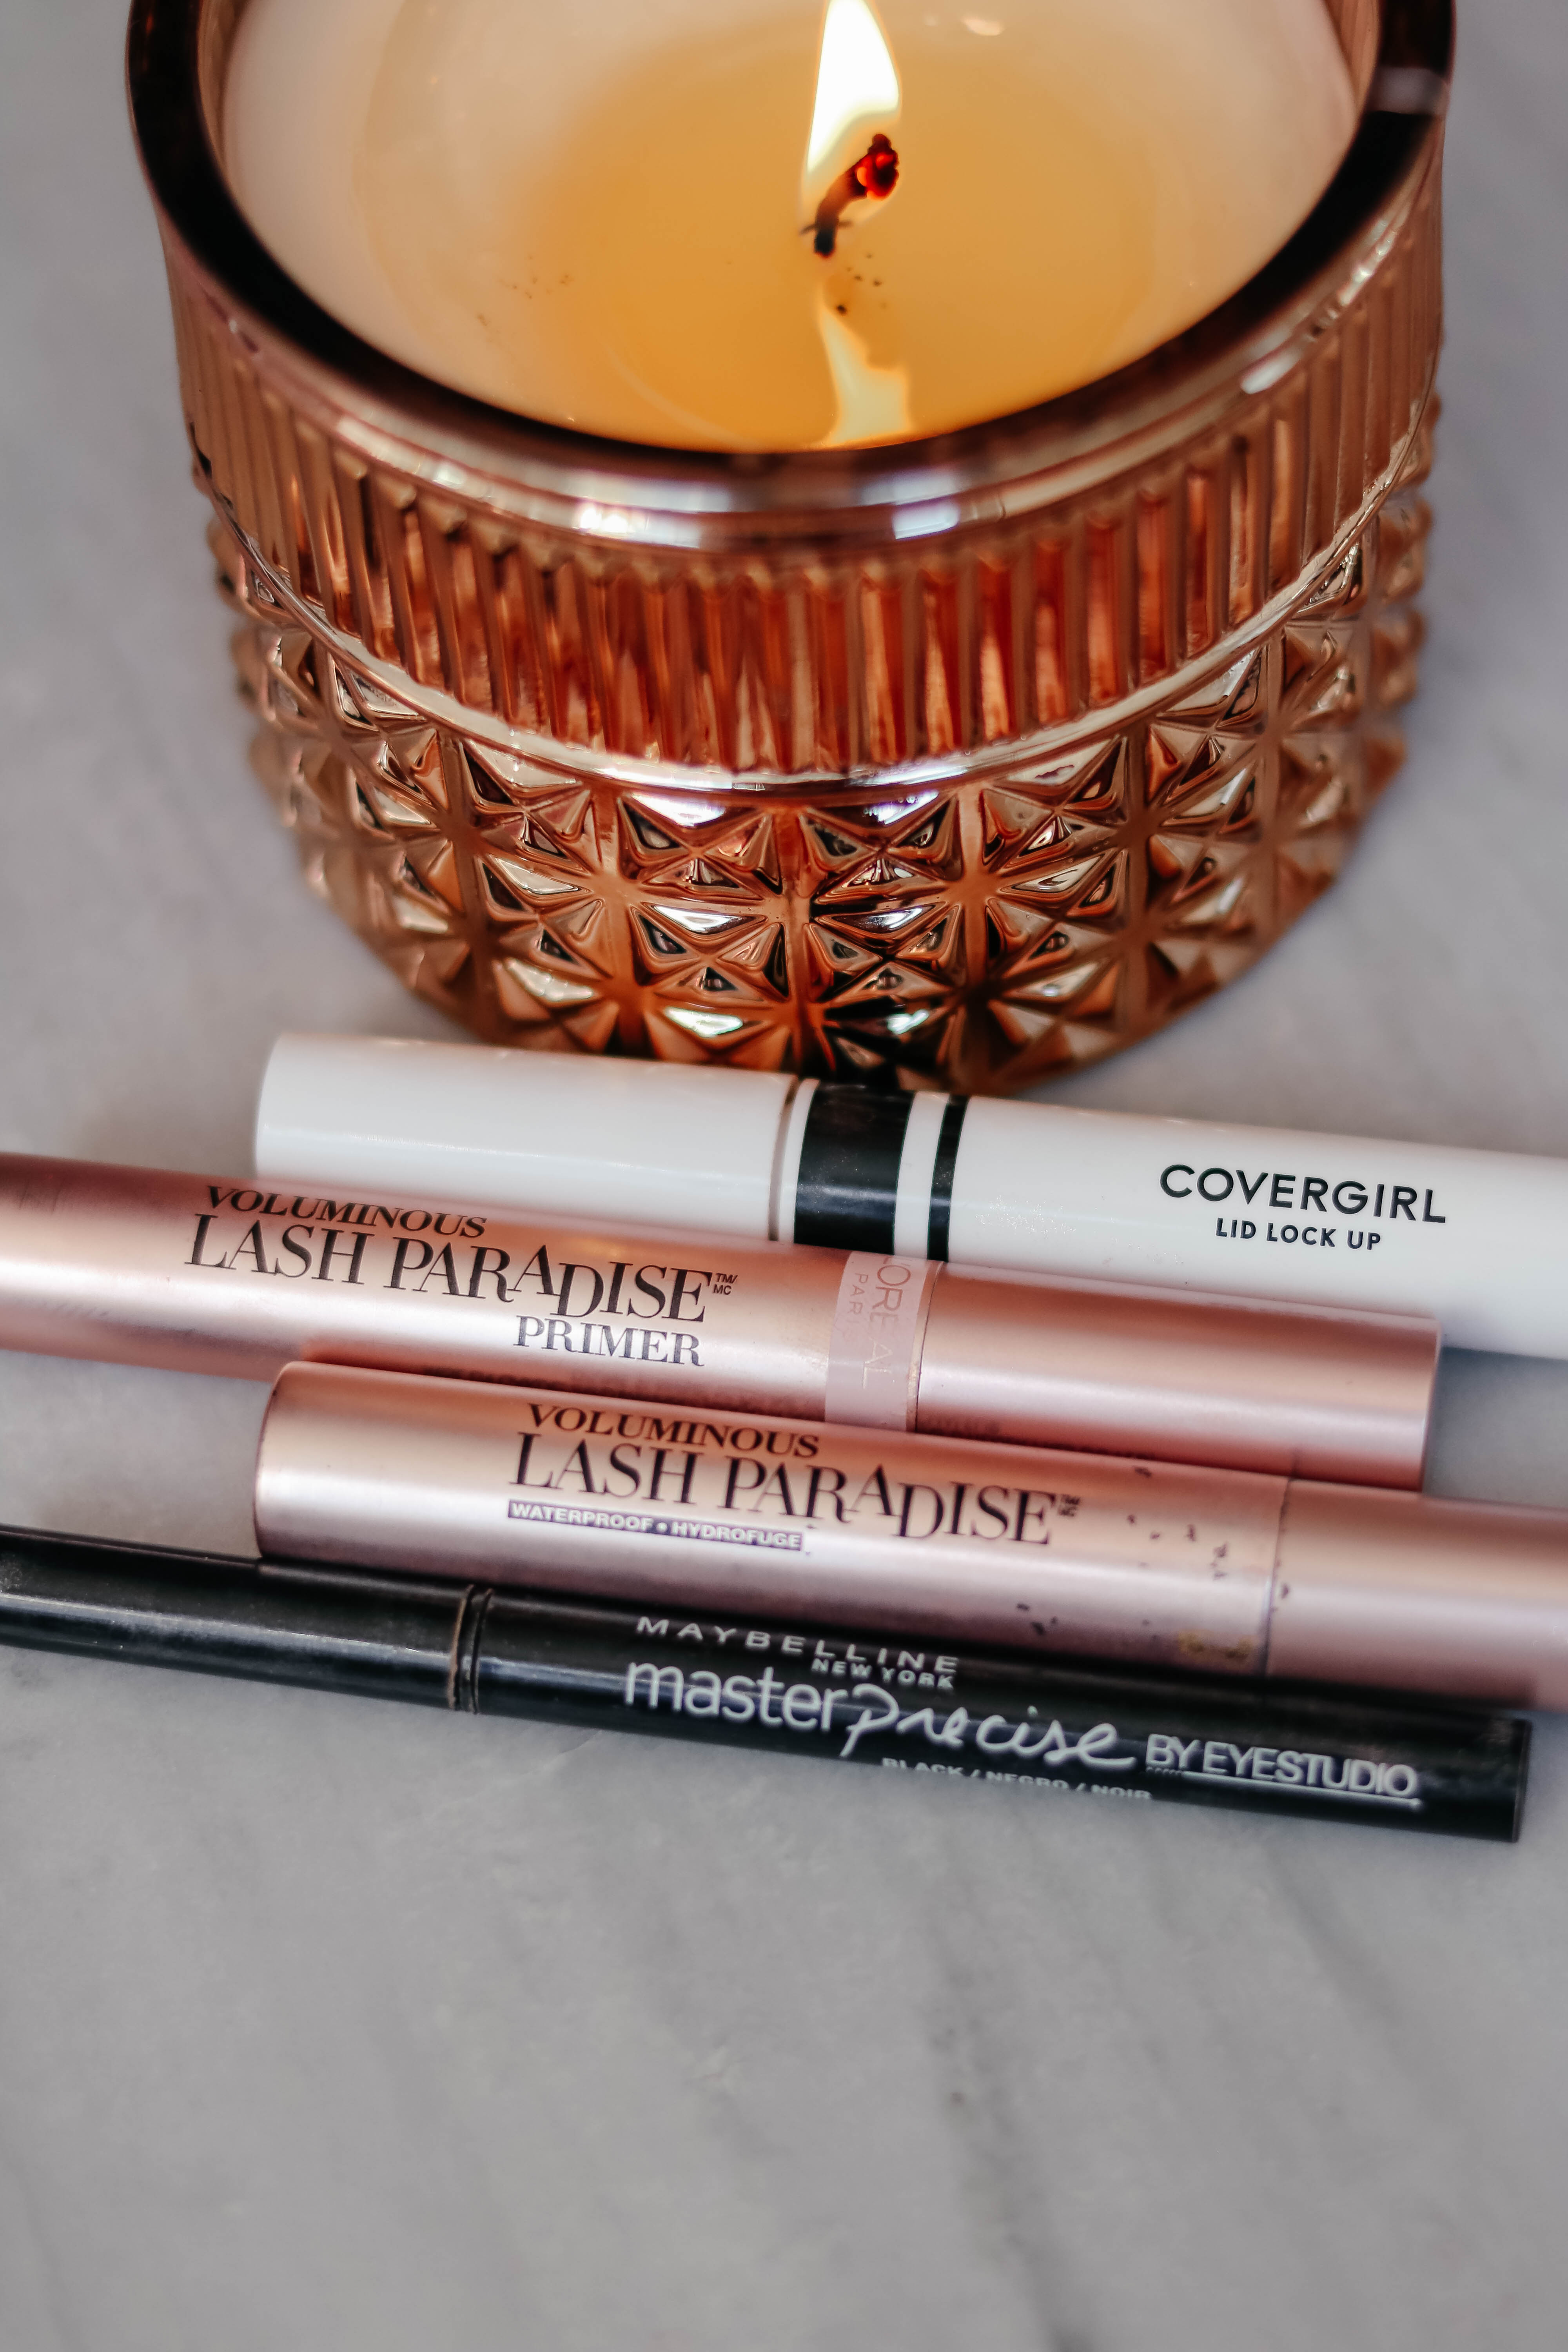 best drugstore mascara, lash primer on Coming Up Roses - L'Oreal Lash Paradise, Covergirl ,Maybelline